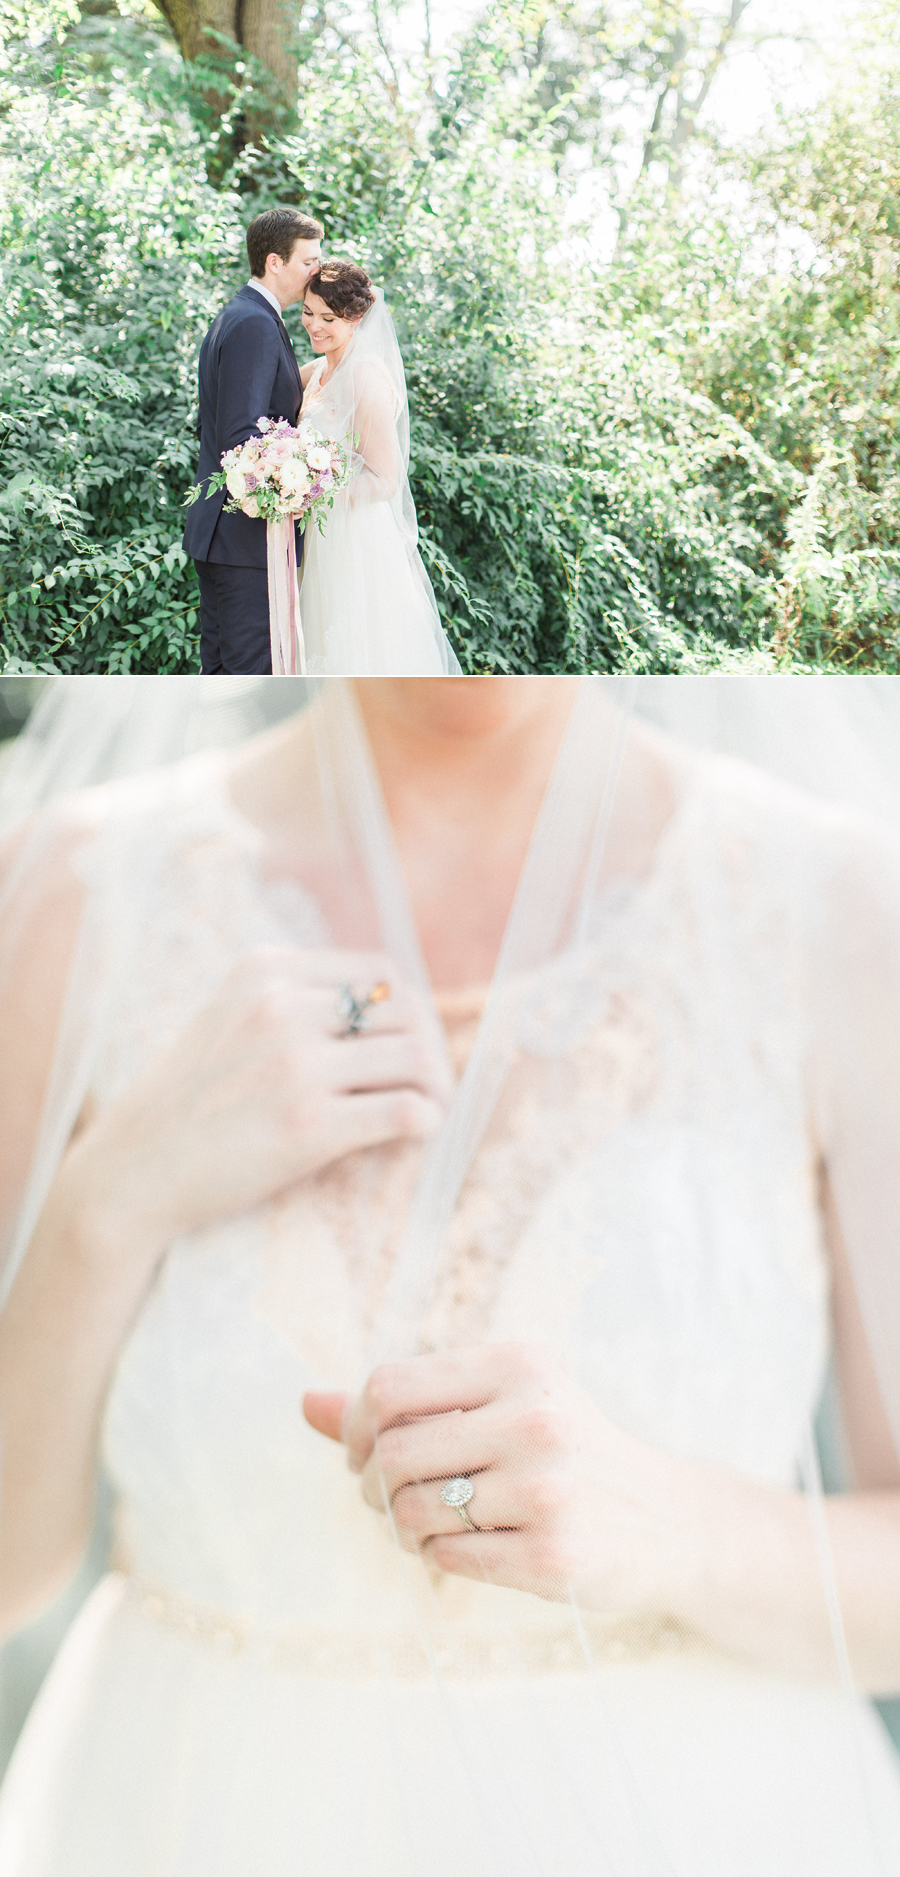 HiddenVineyardWedding15.jpg